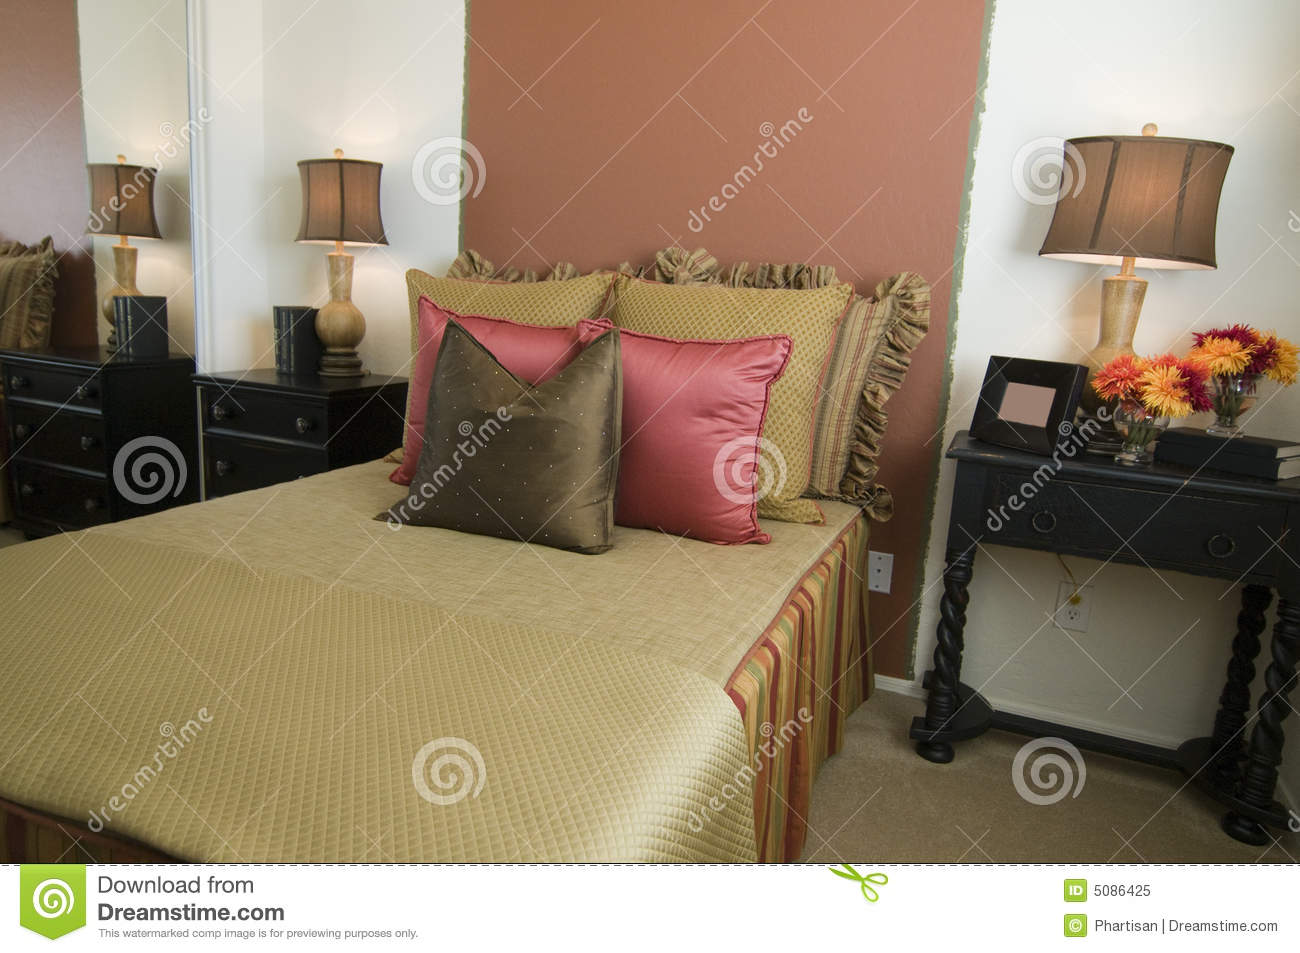 Beautiful showcase bedroom interior royalty free stock for Bedroom showcase